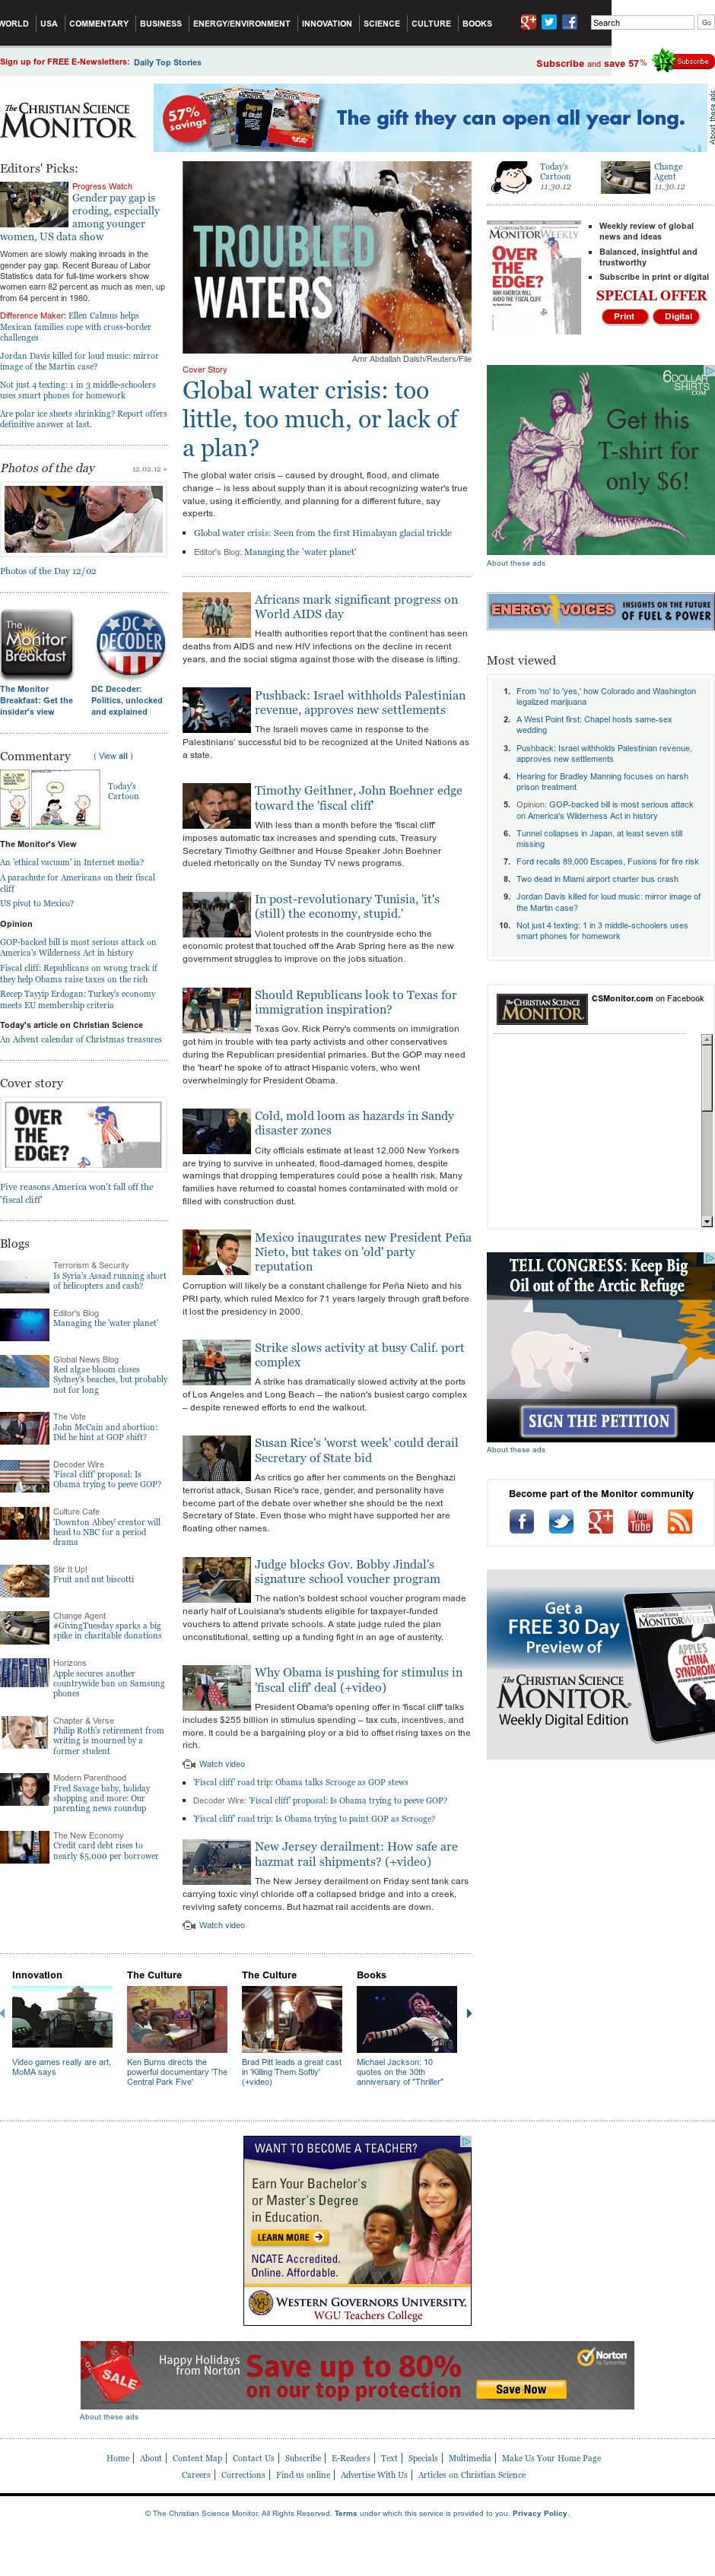 The Christian Science Monitor at Monday Dec. 3, 2012, 3:06 a.m. UTC